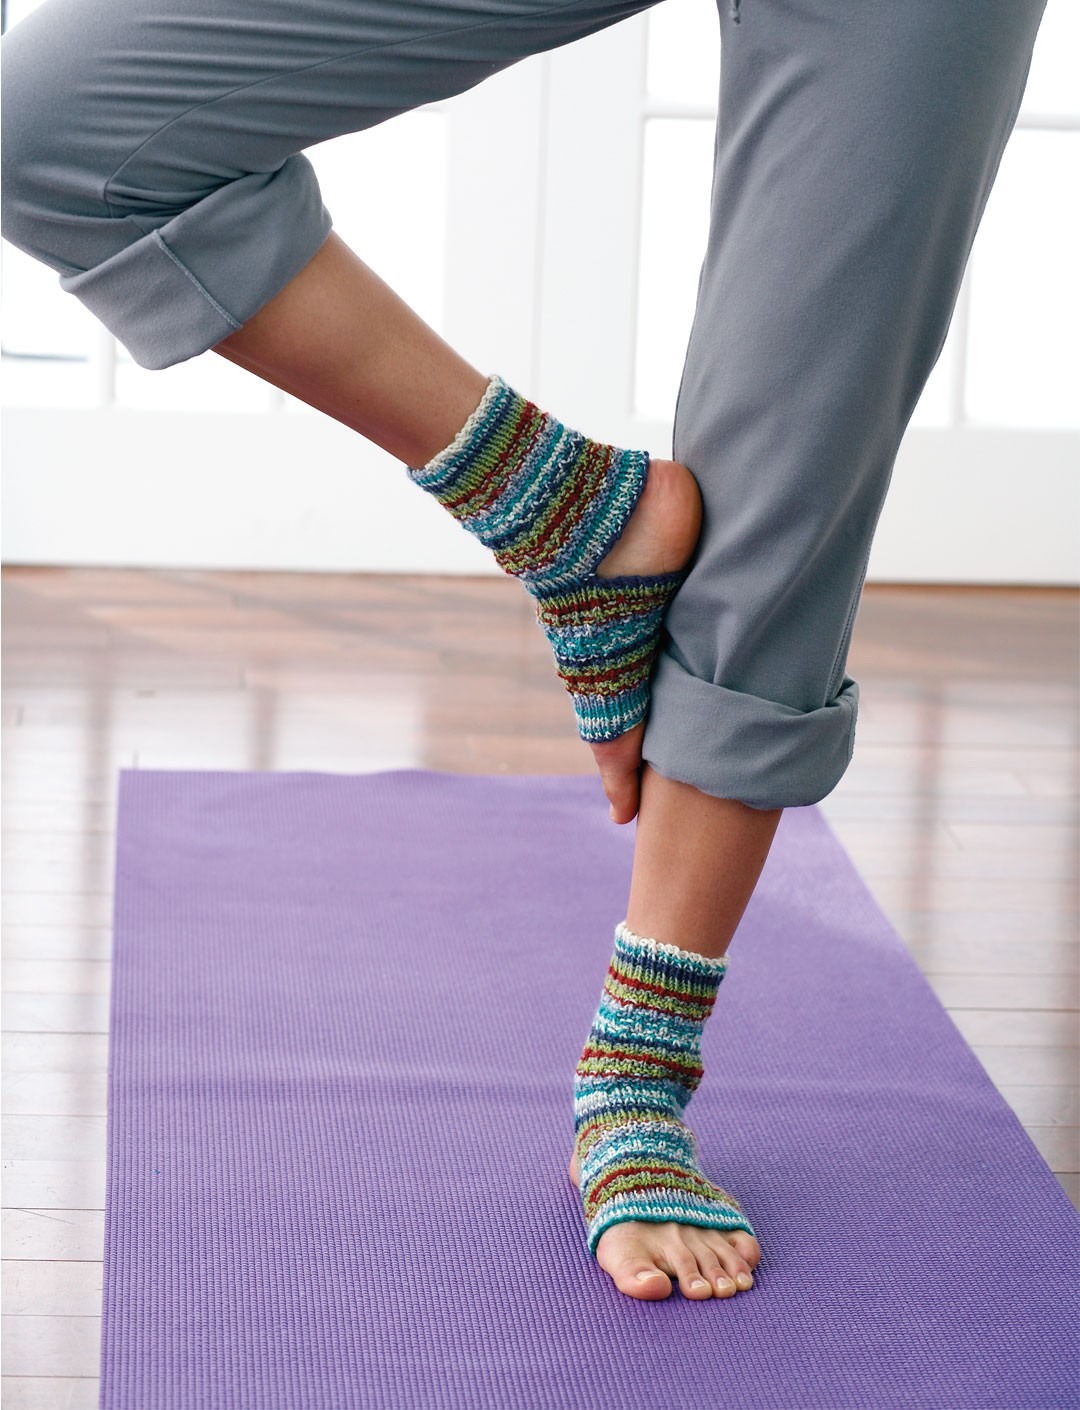 Easy Knitting Pattern For Yoga Socks : Yoga Socks - Patterns Yarnspirations